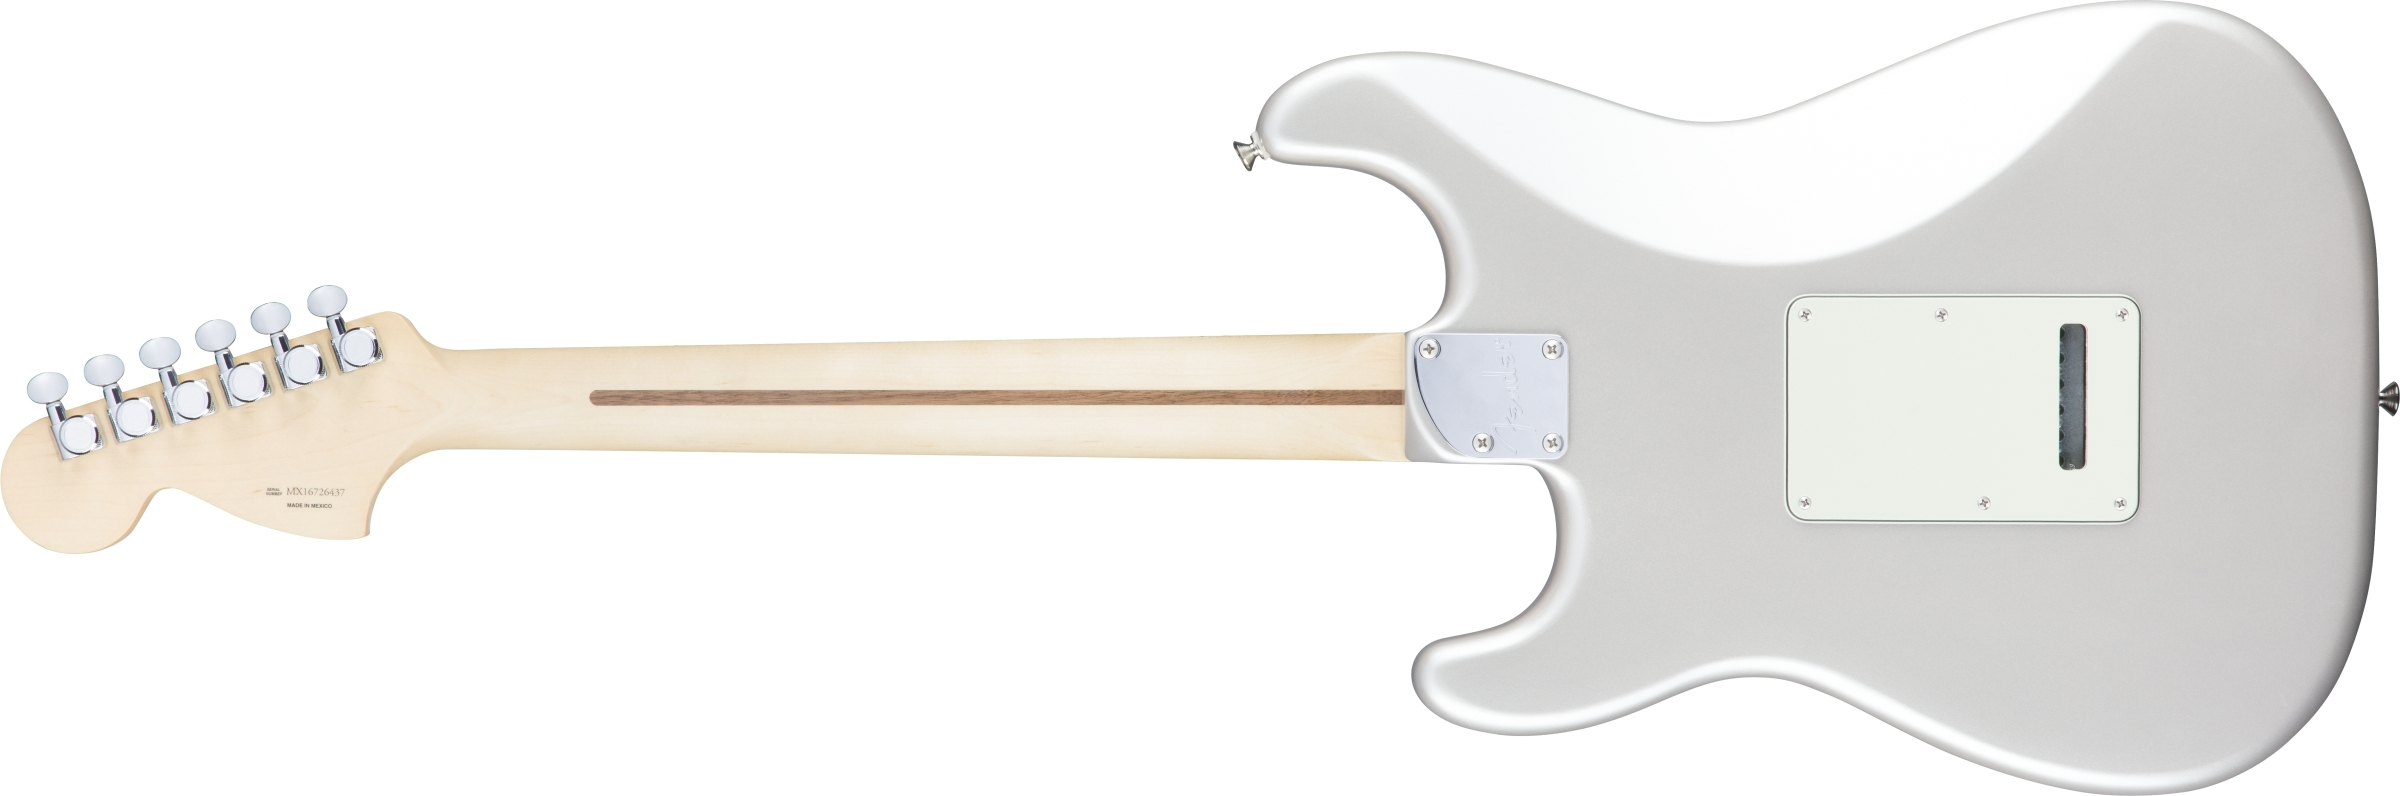 squier bullet strat hss wiring diagram 2016 ford f150 factory stereo fender deluxe stratocaster maple fingerboard